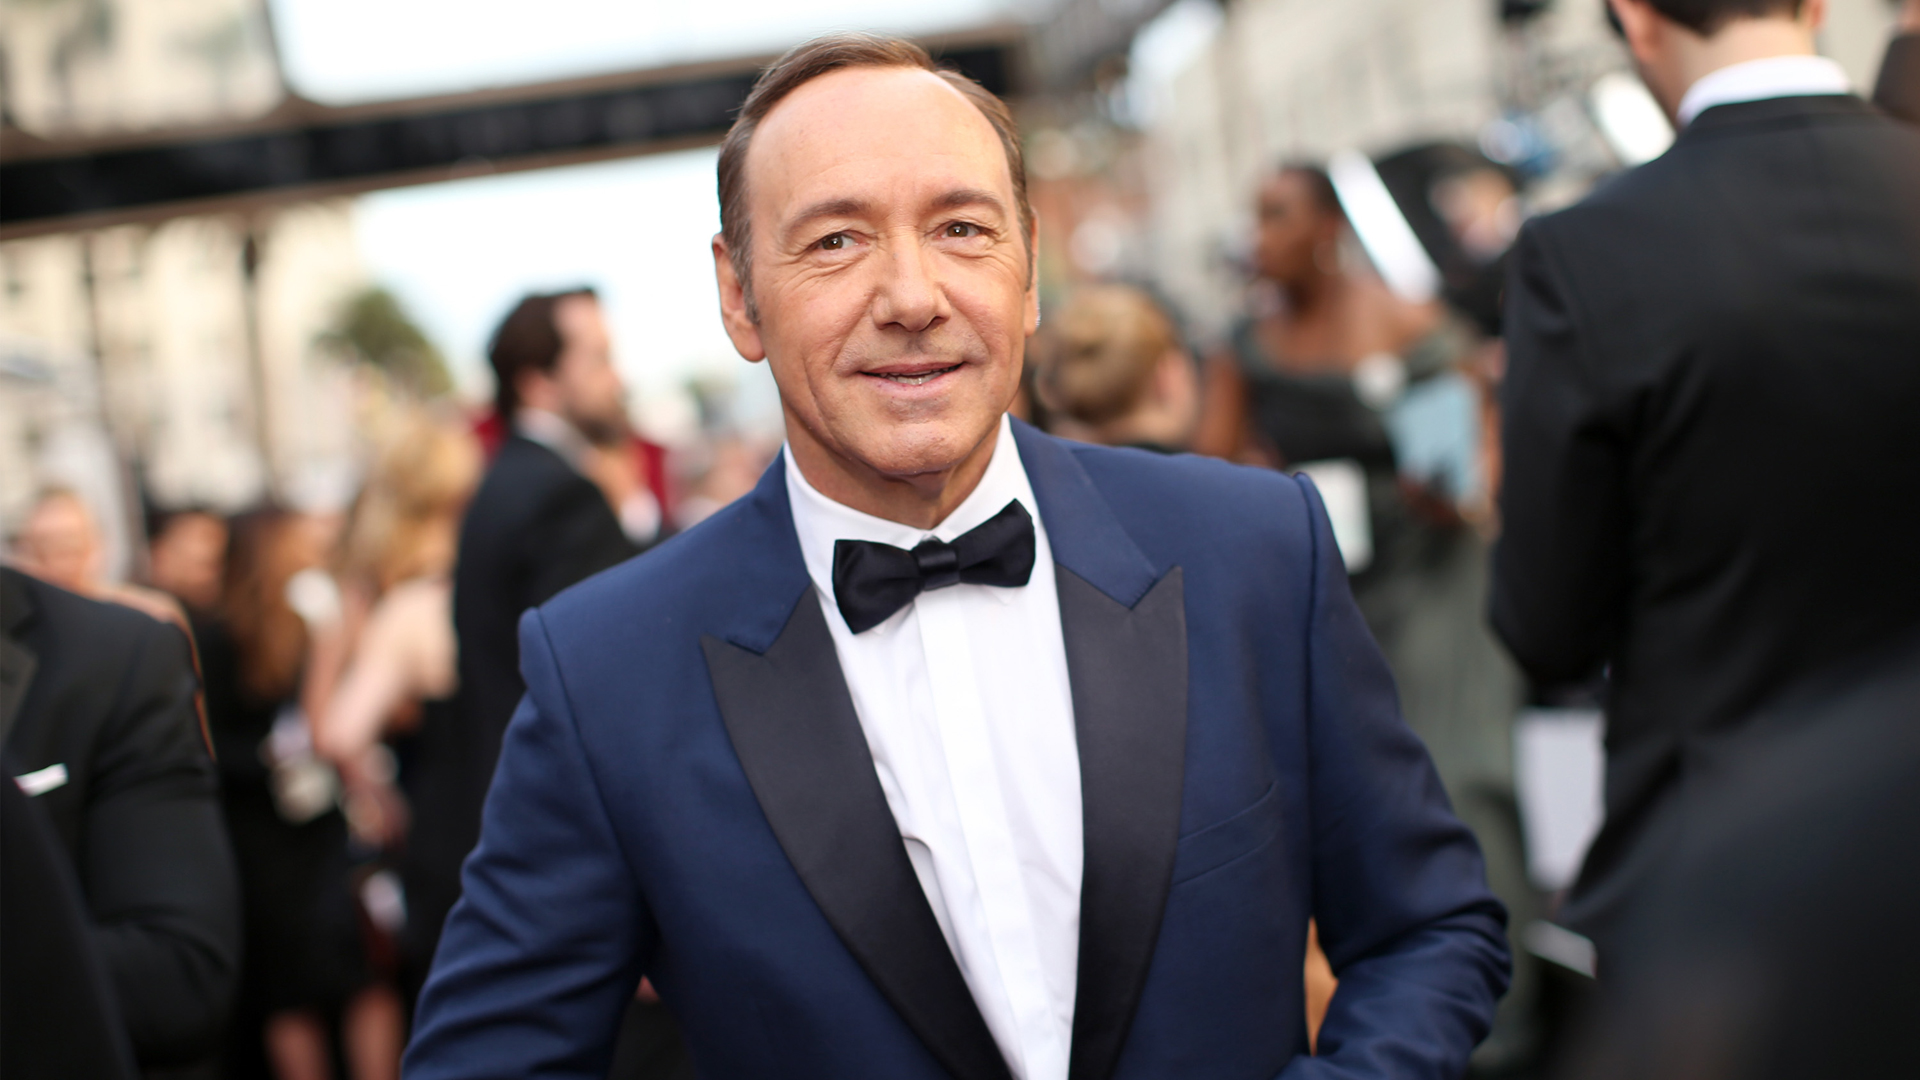 Actor Kevin Spacey attends the Oscars held at Hollywood & Highland Center on March 2, 2014. (Credit: Christopher Polk / Getty Images)